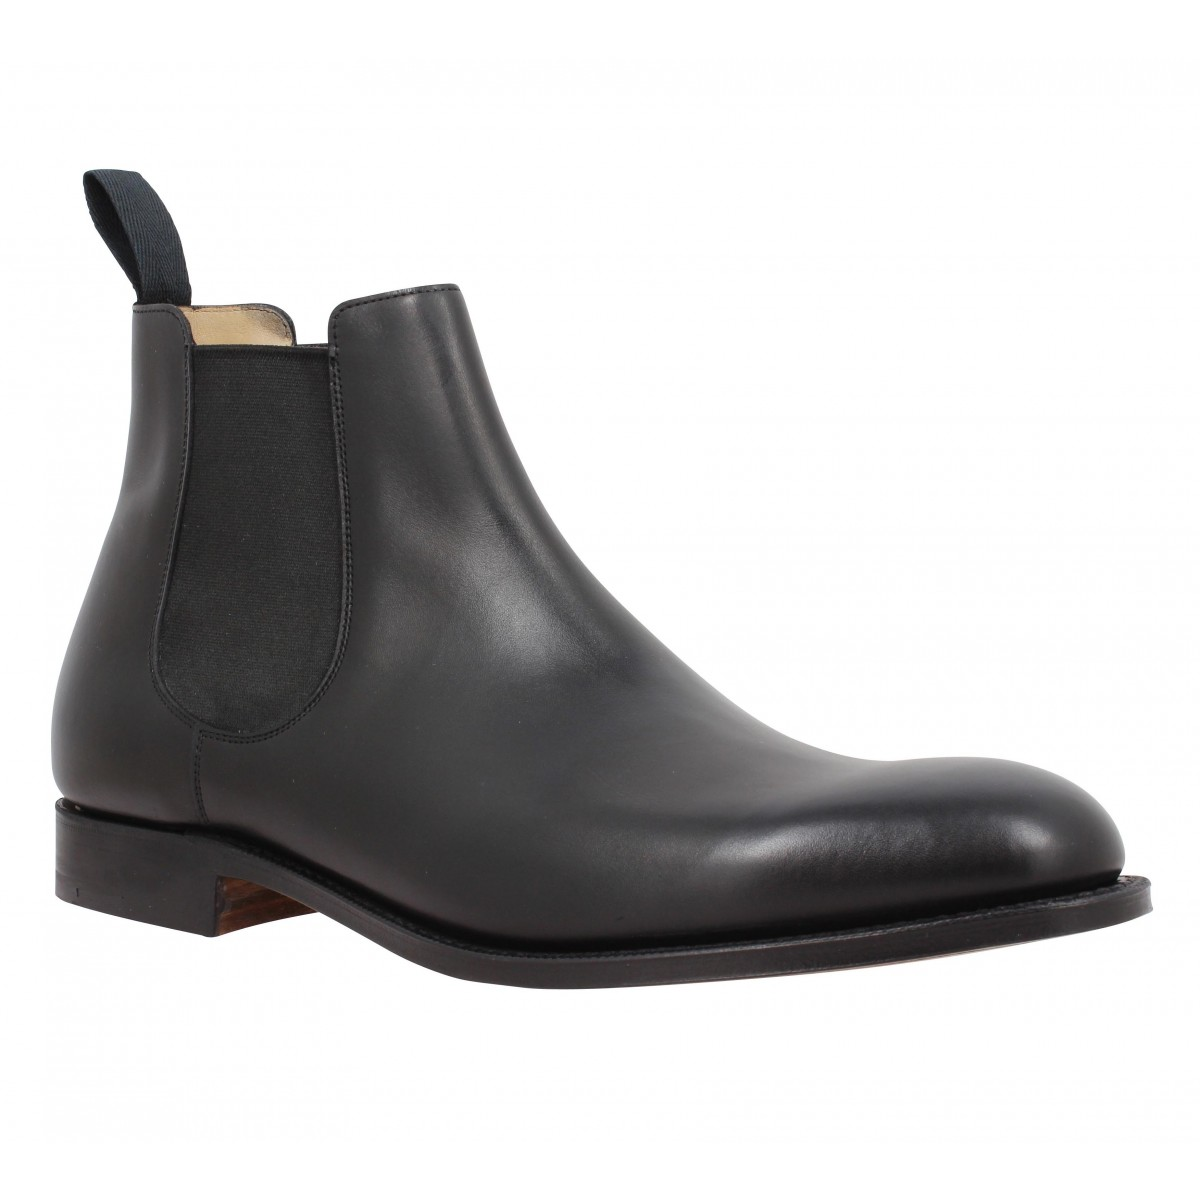 83cff25d774 Oser le luxe Bottines Church s houston cuir homme noir